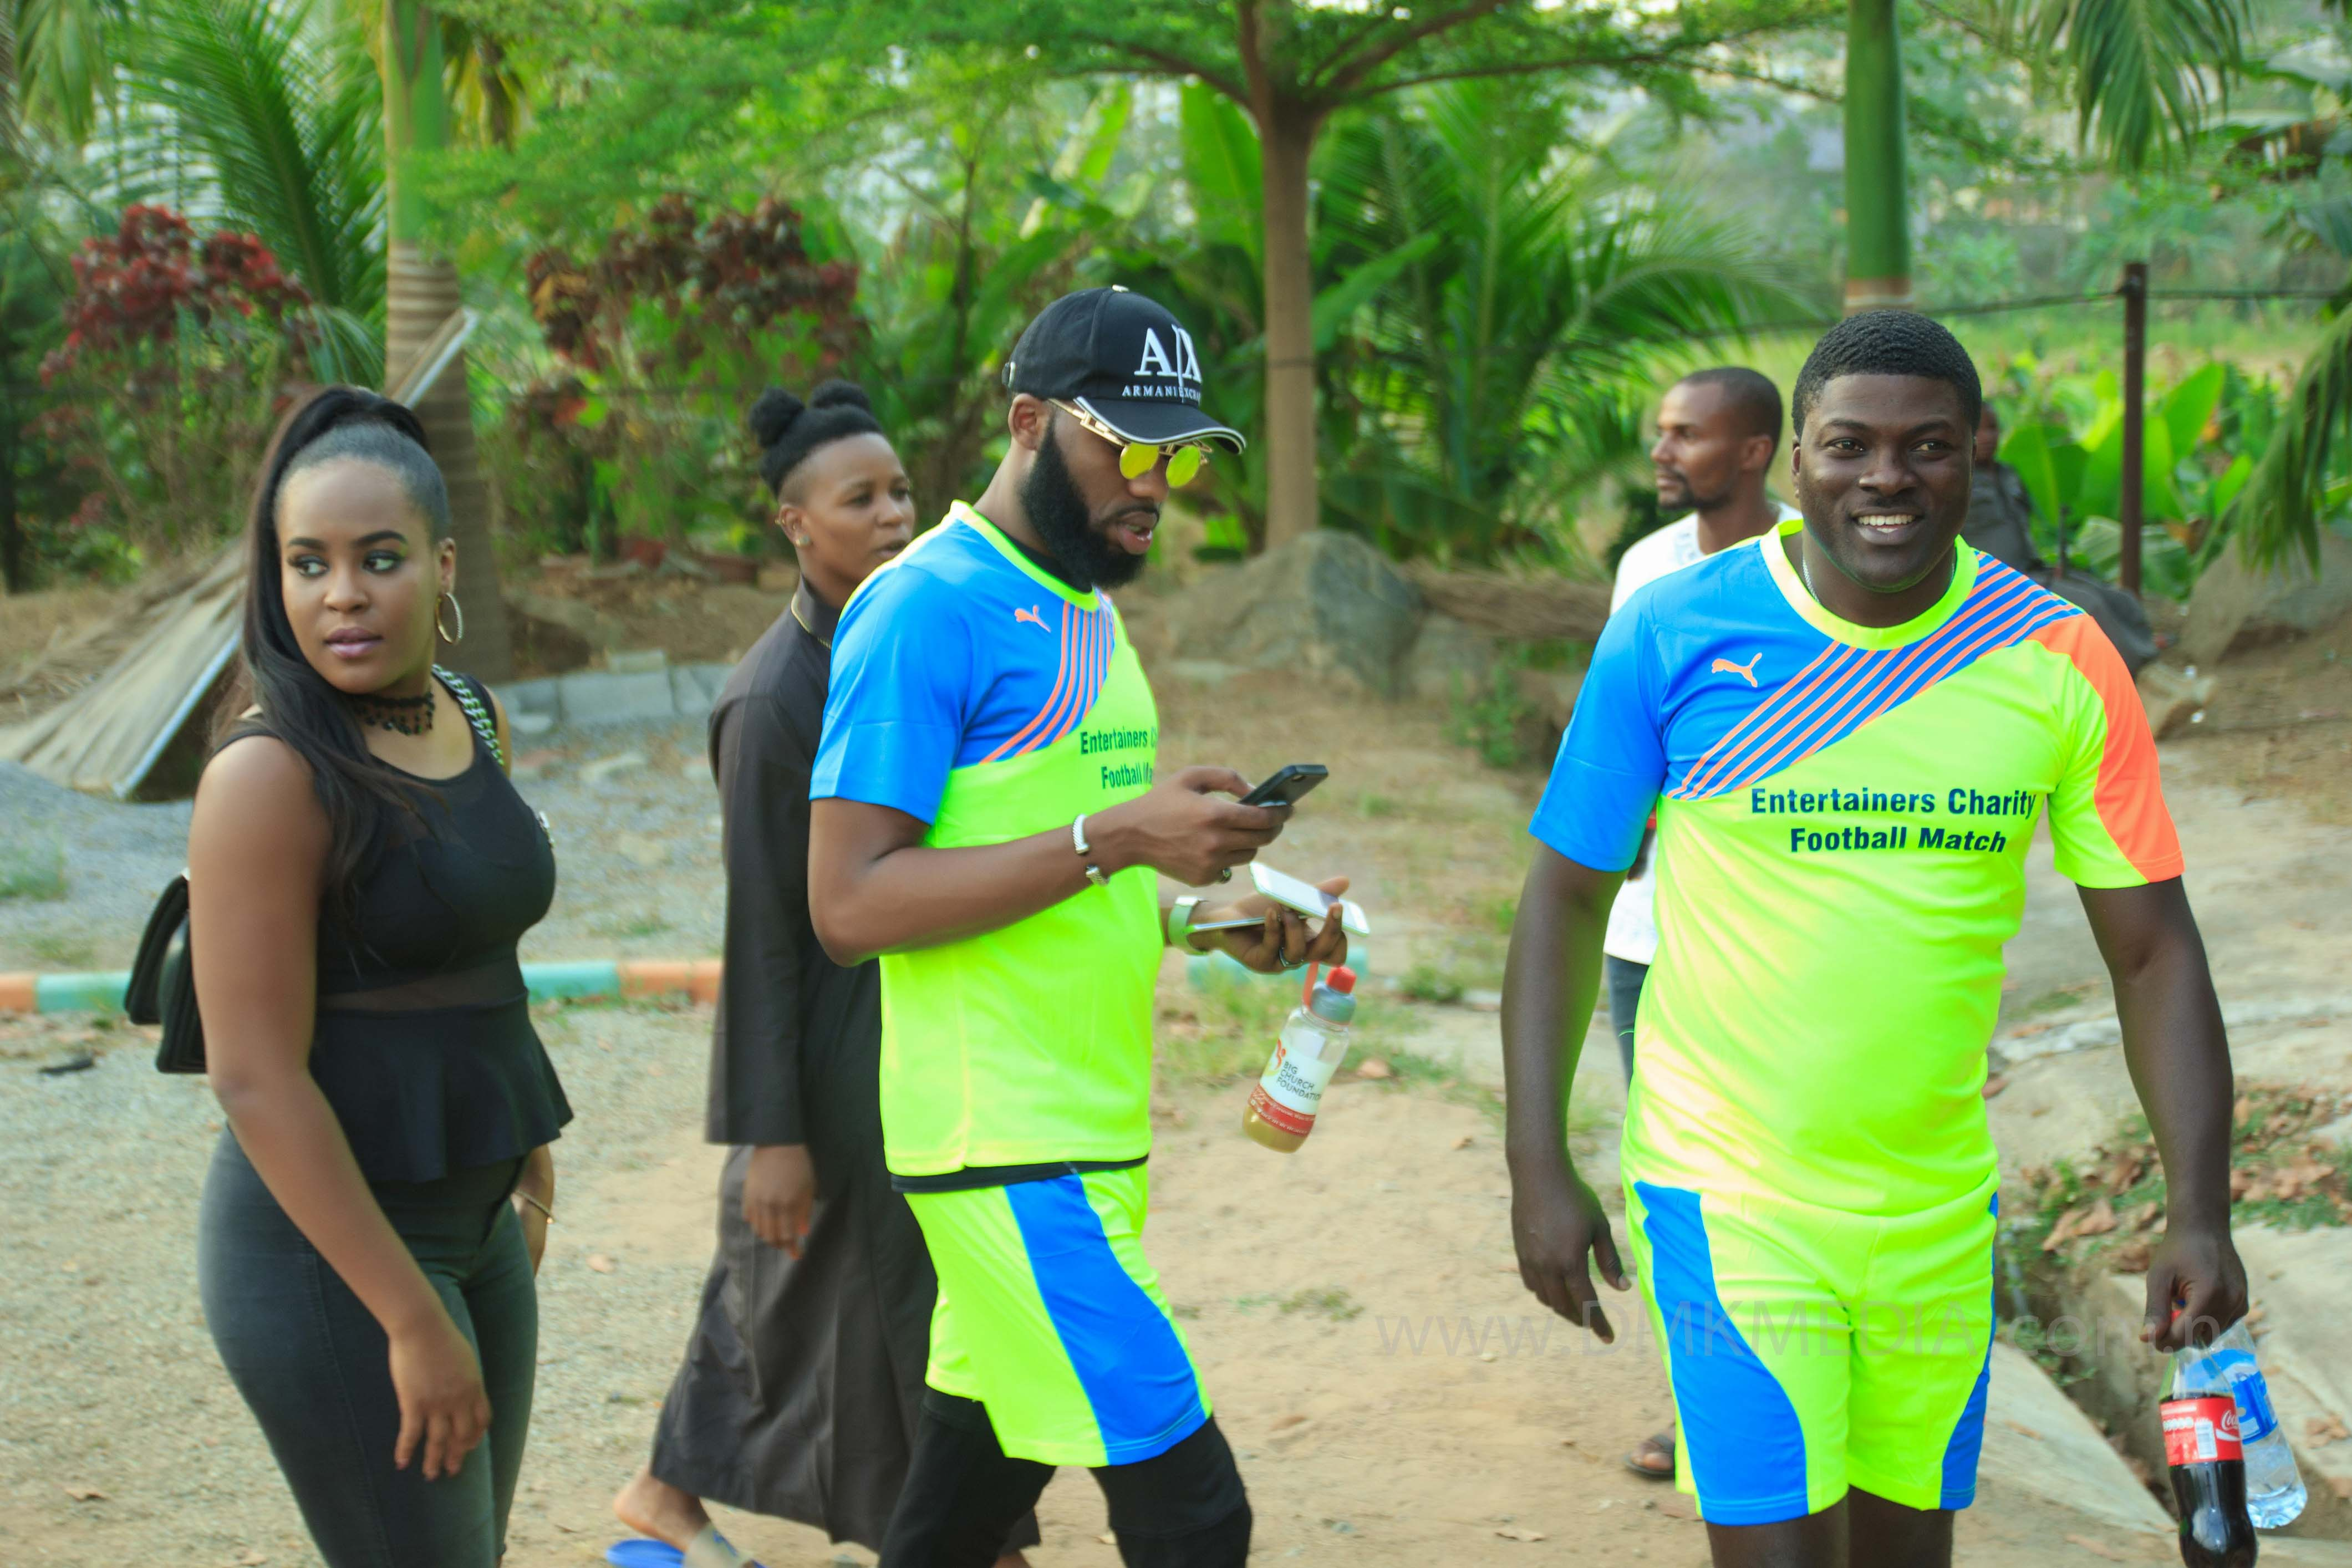 big-church-foundation-entertainers-charity-football-match-16